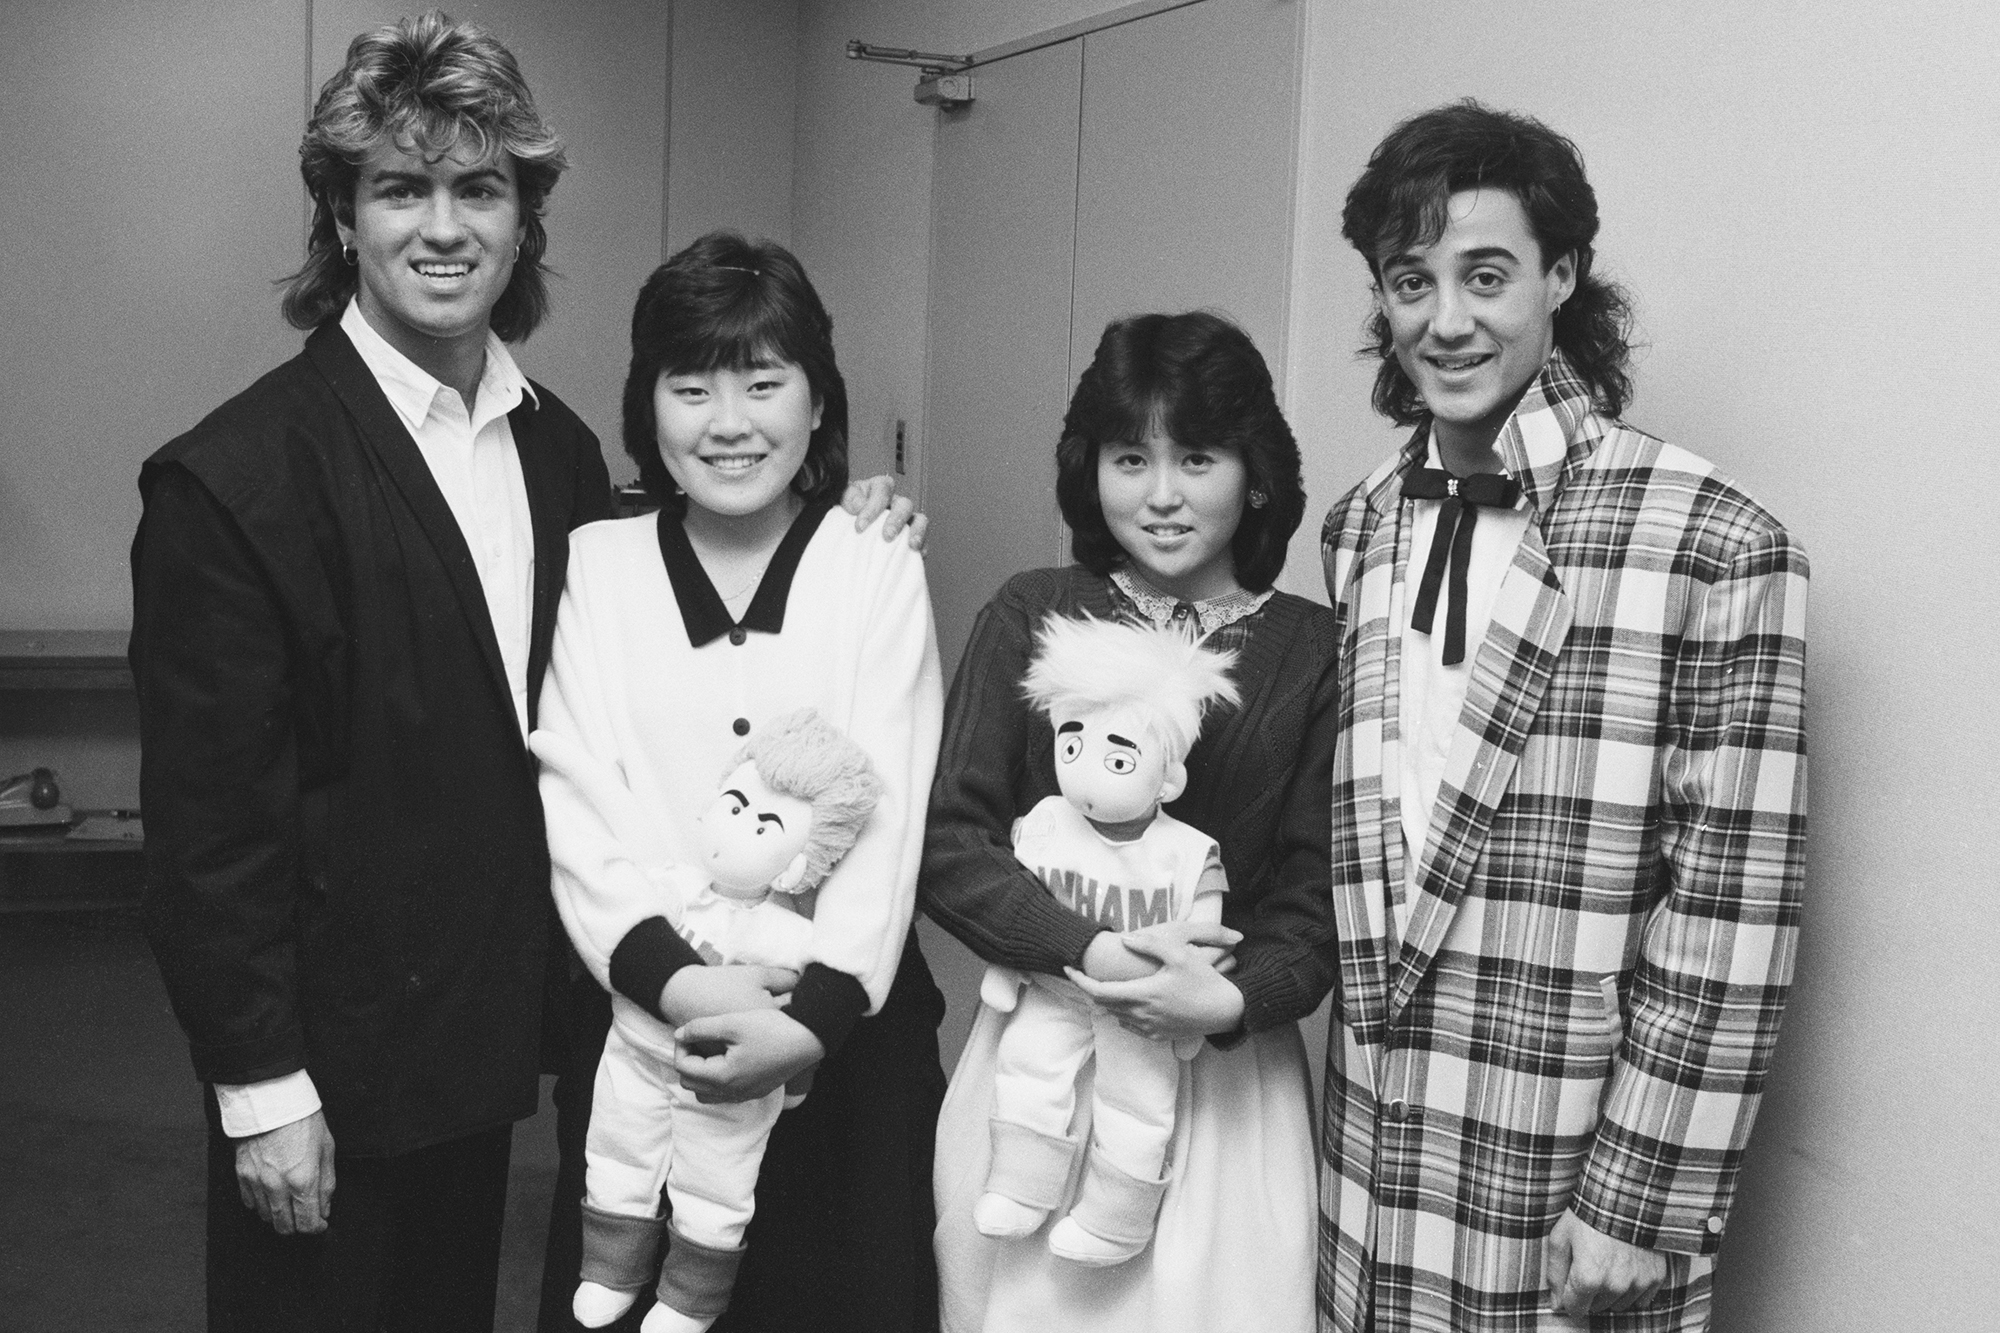 George Michael and Andrew Ridgeley of Wham! with two fans during their 1985 world tour in Japan.